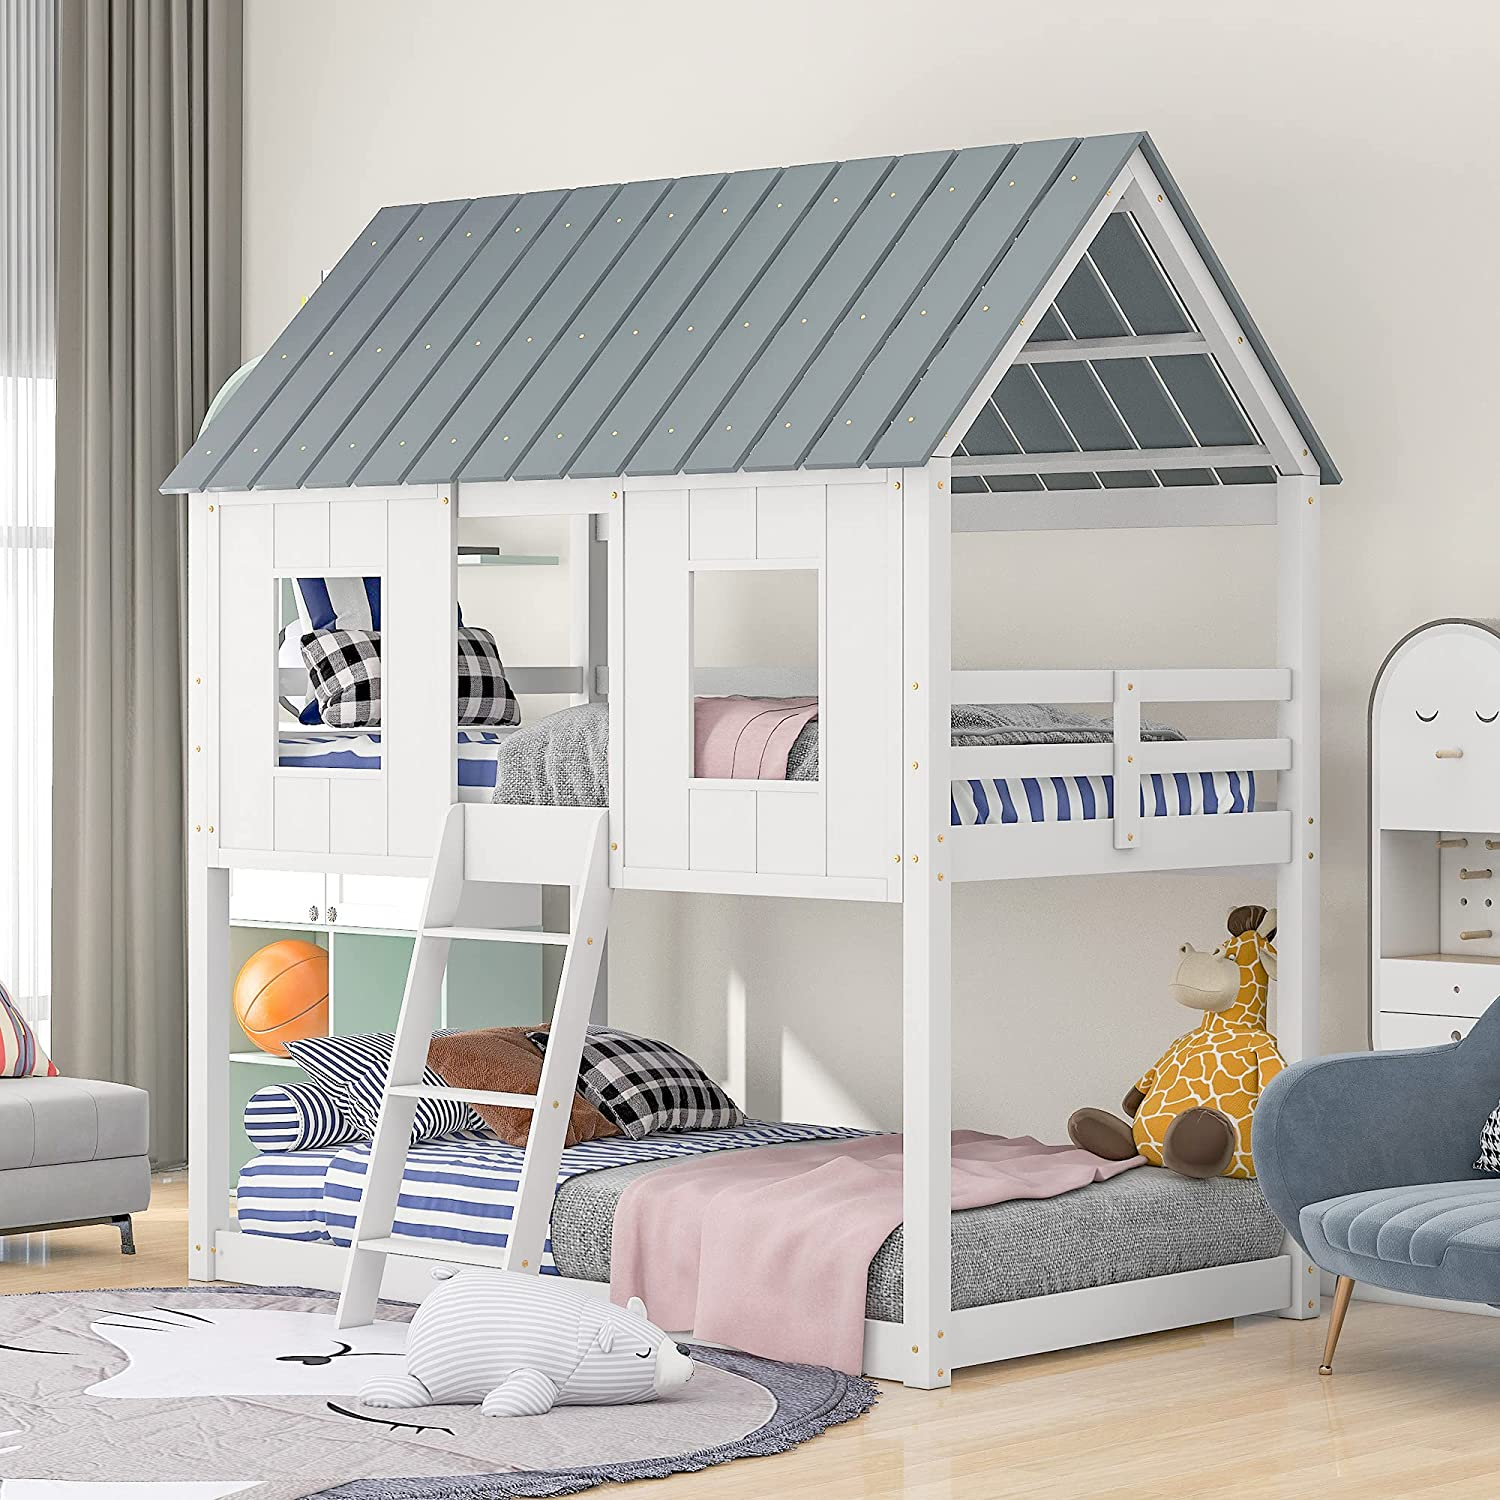 Twin Over Tulsa Mall Bunk Beds Rockjame Be super welcome Bed Frame with Roof Low